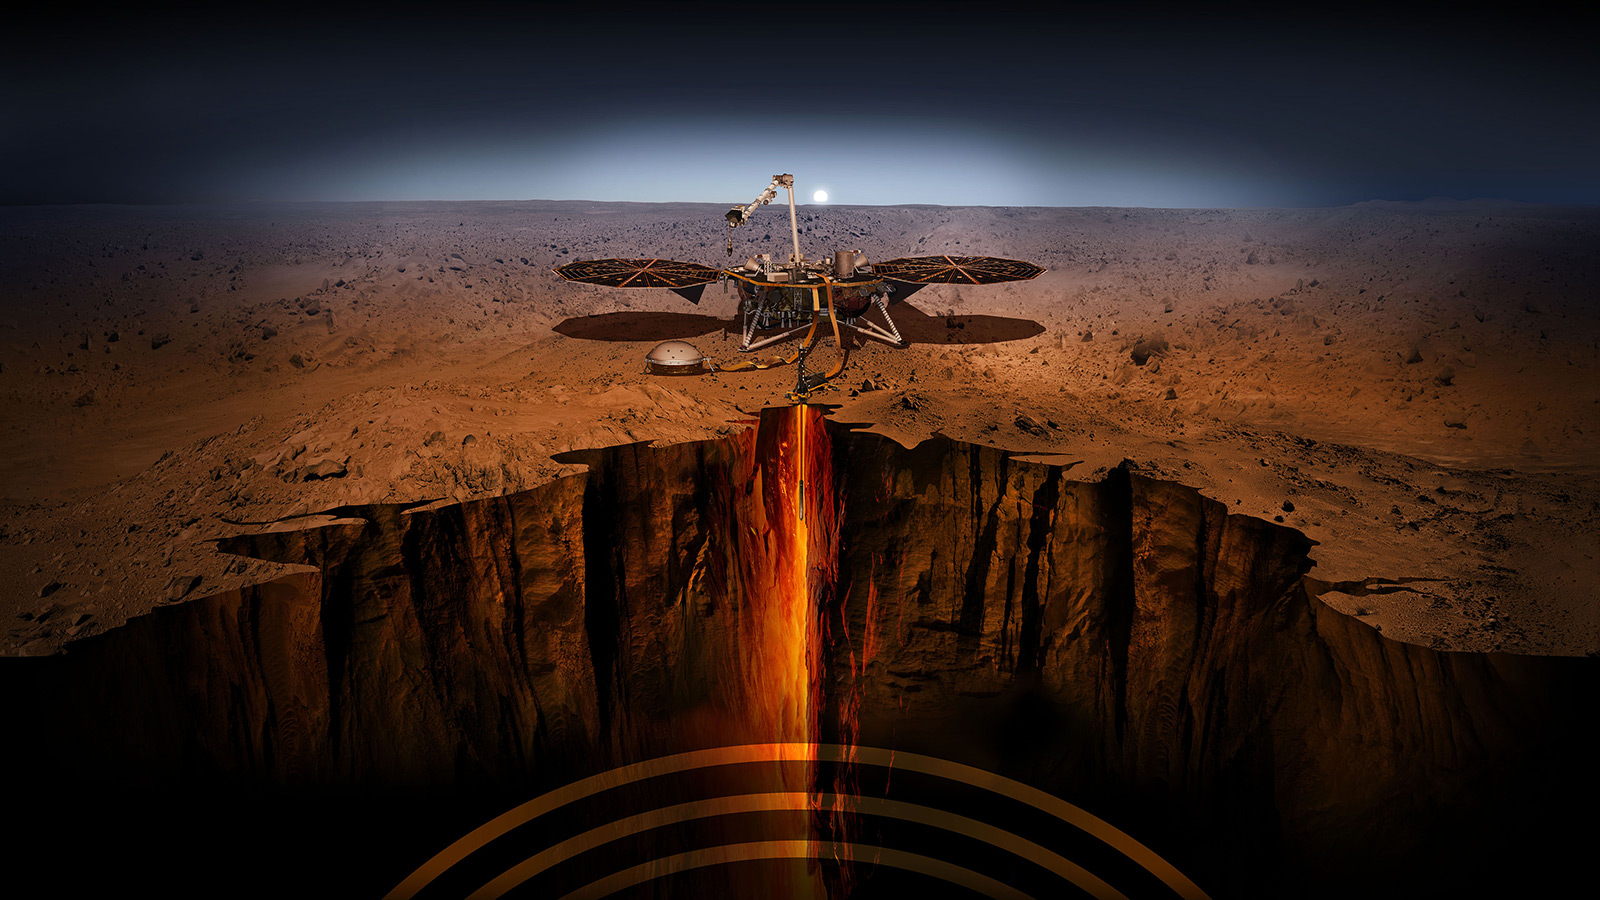 An artist's illustration of the InSight lander on Mars. Image Credit: NASA/JPL-Caltech